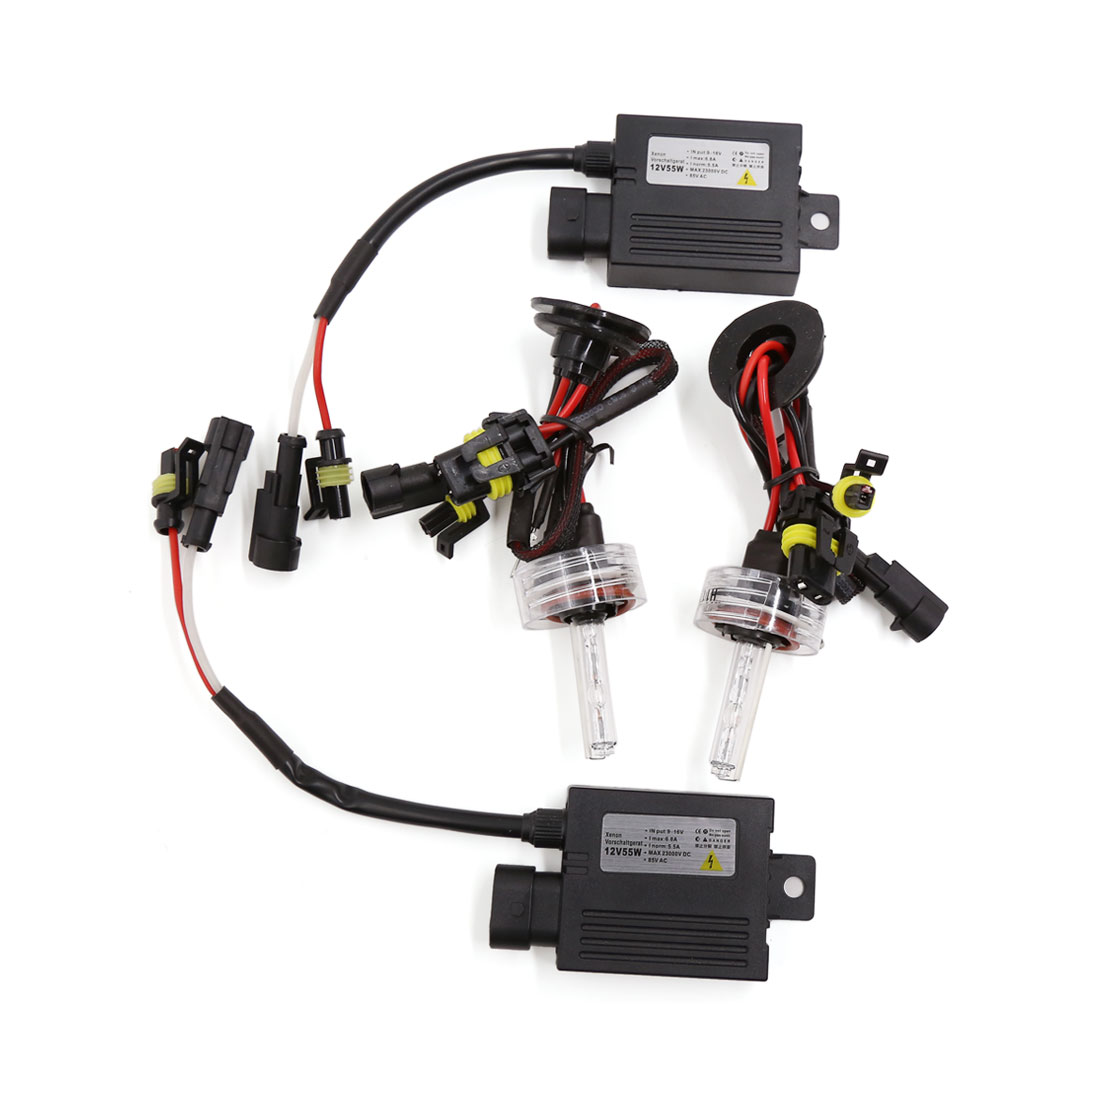 DC 12V 55W H11 Single Beam HID Xenon Bulb Light Headlight Conversion Kit 6000K